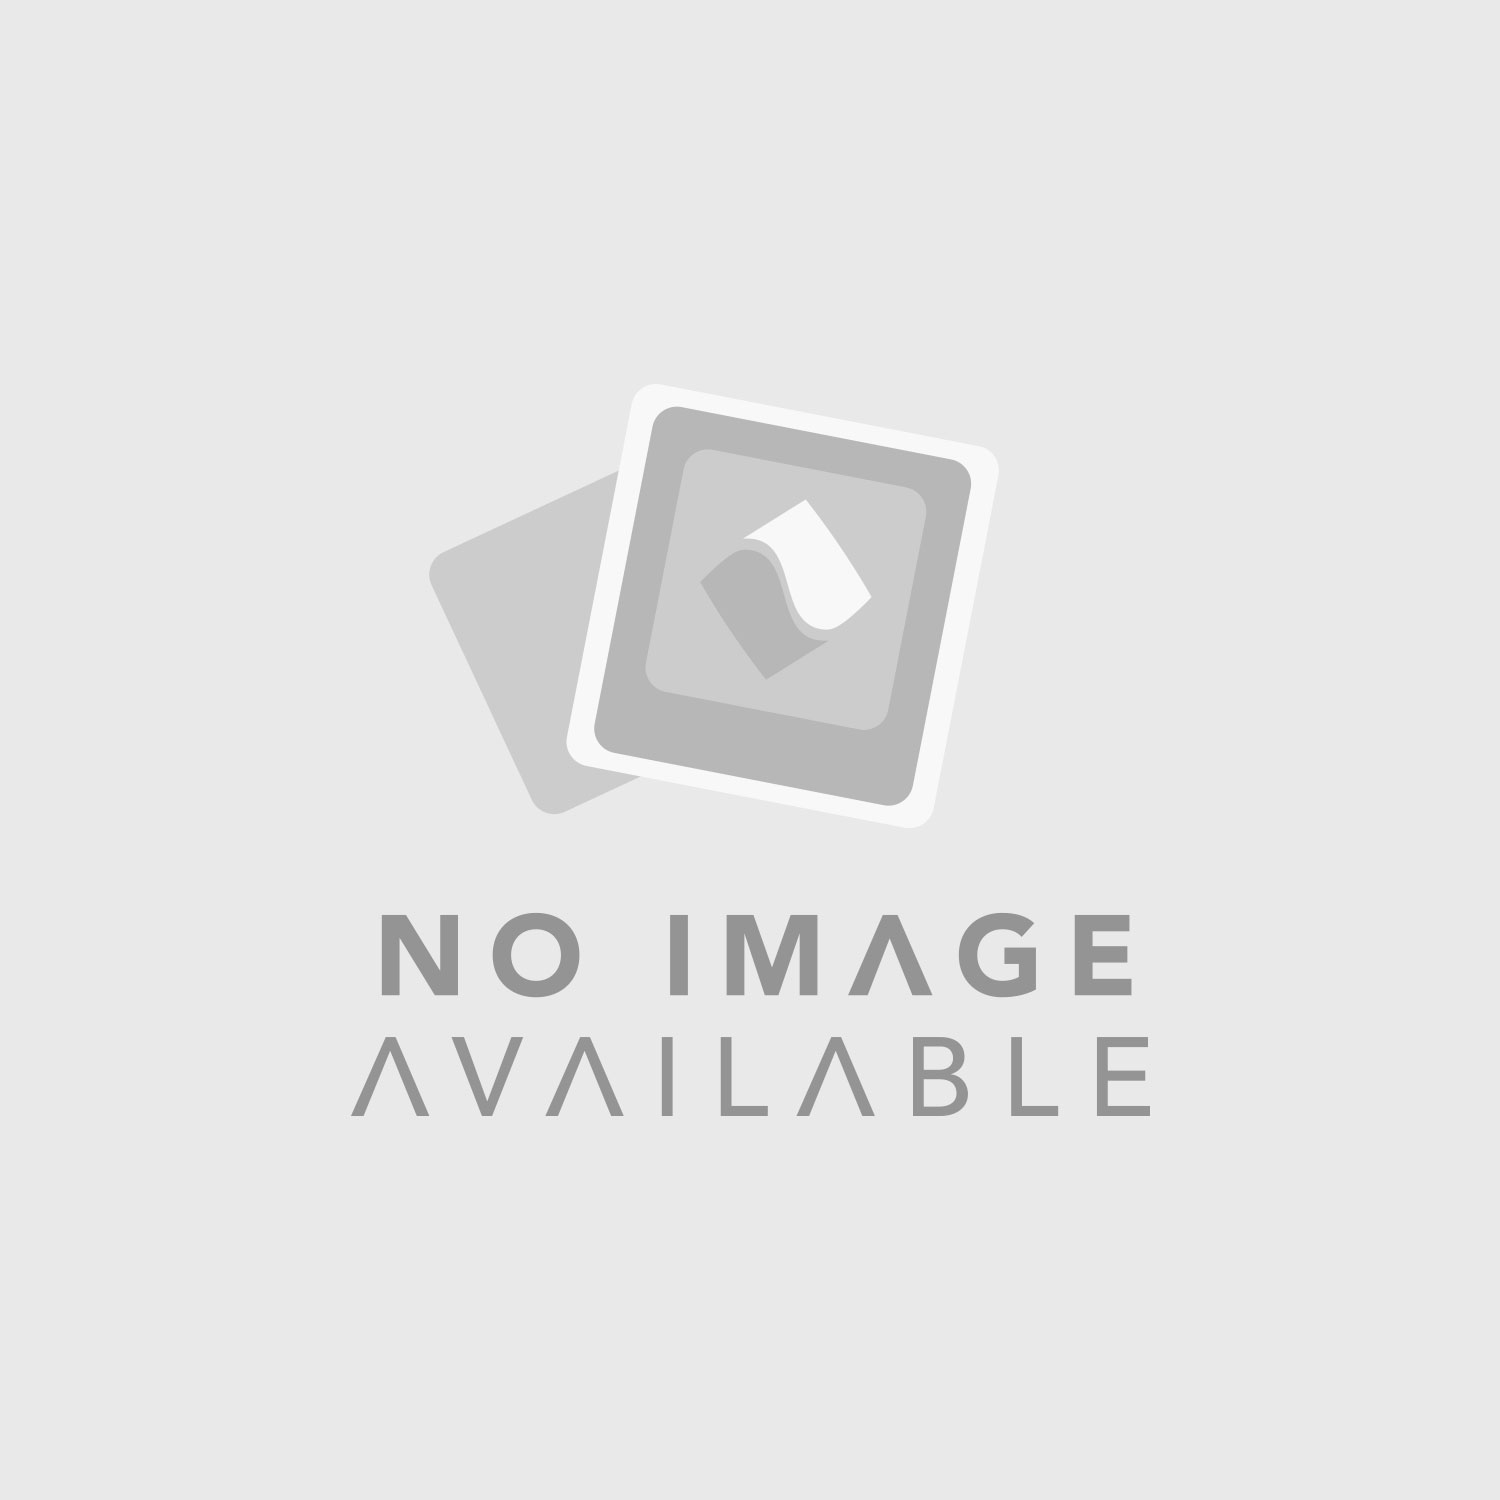 Shure RK345 Windscreen for SM7, SM7A and SM7B